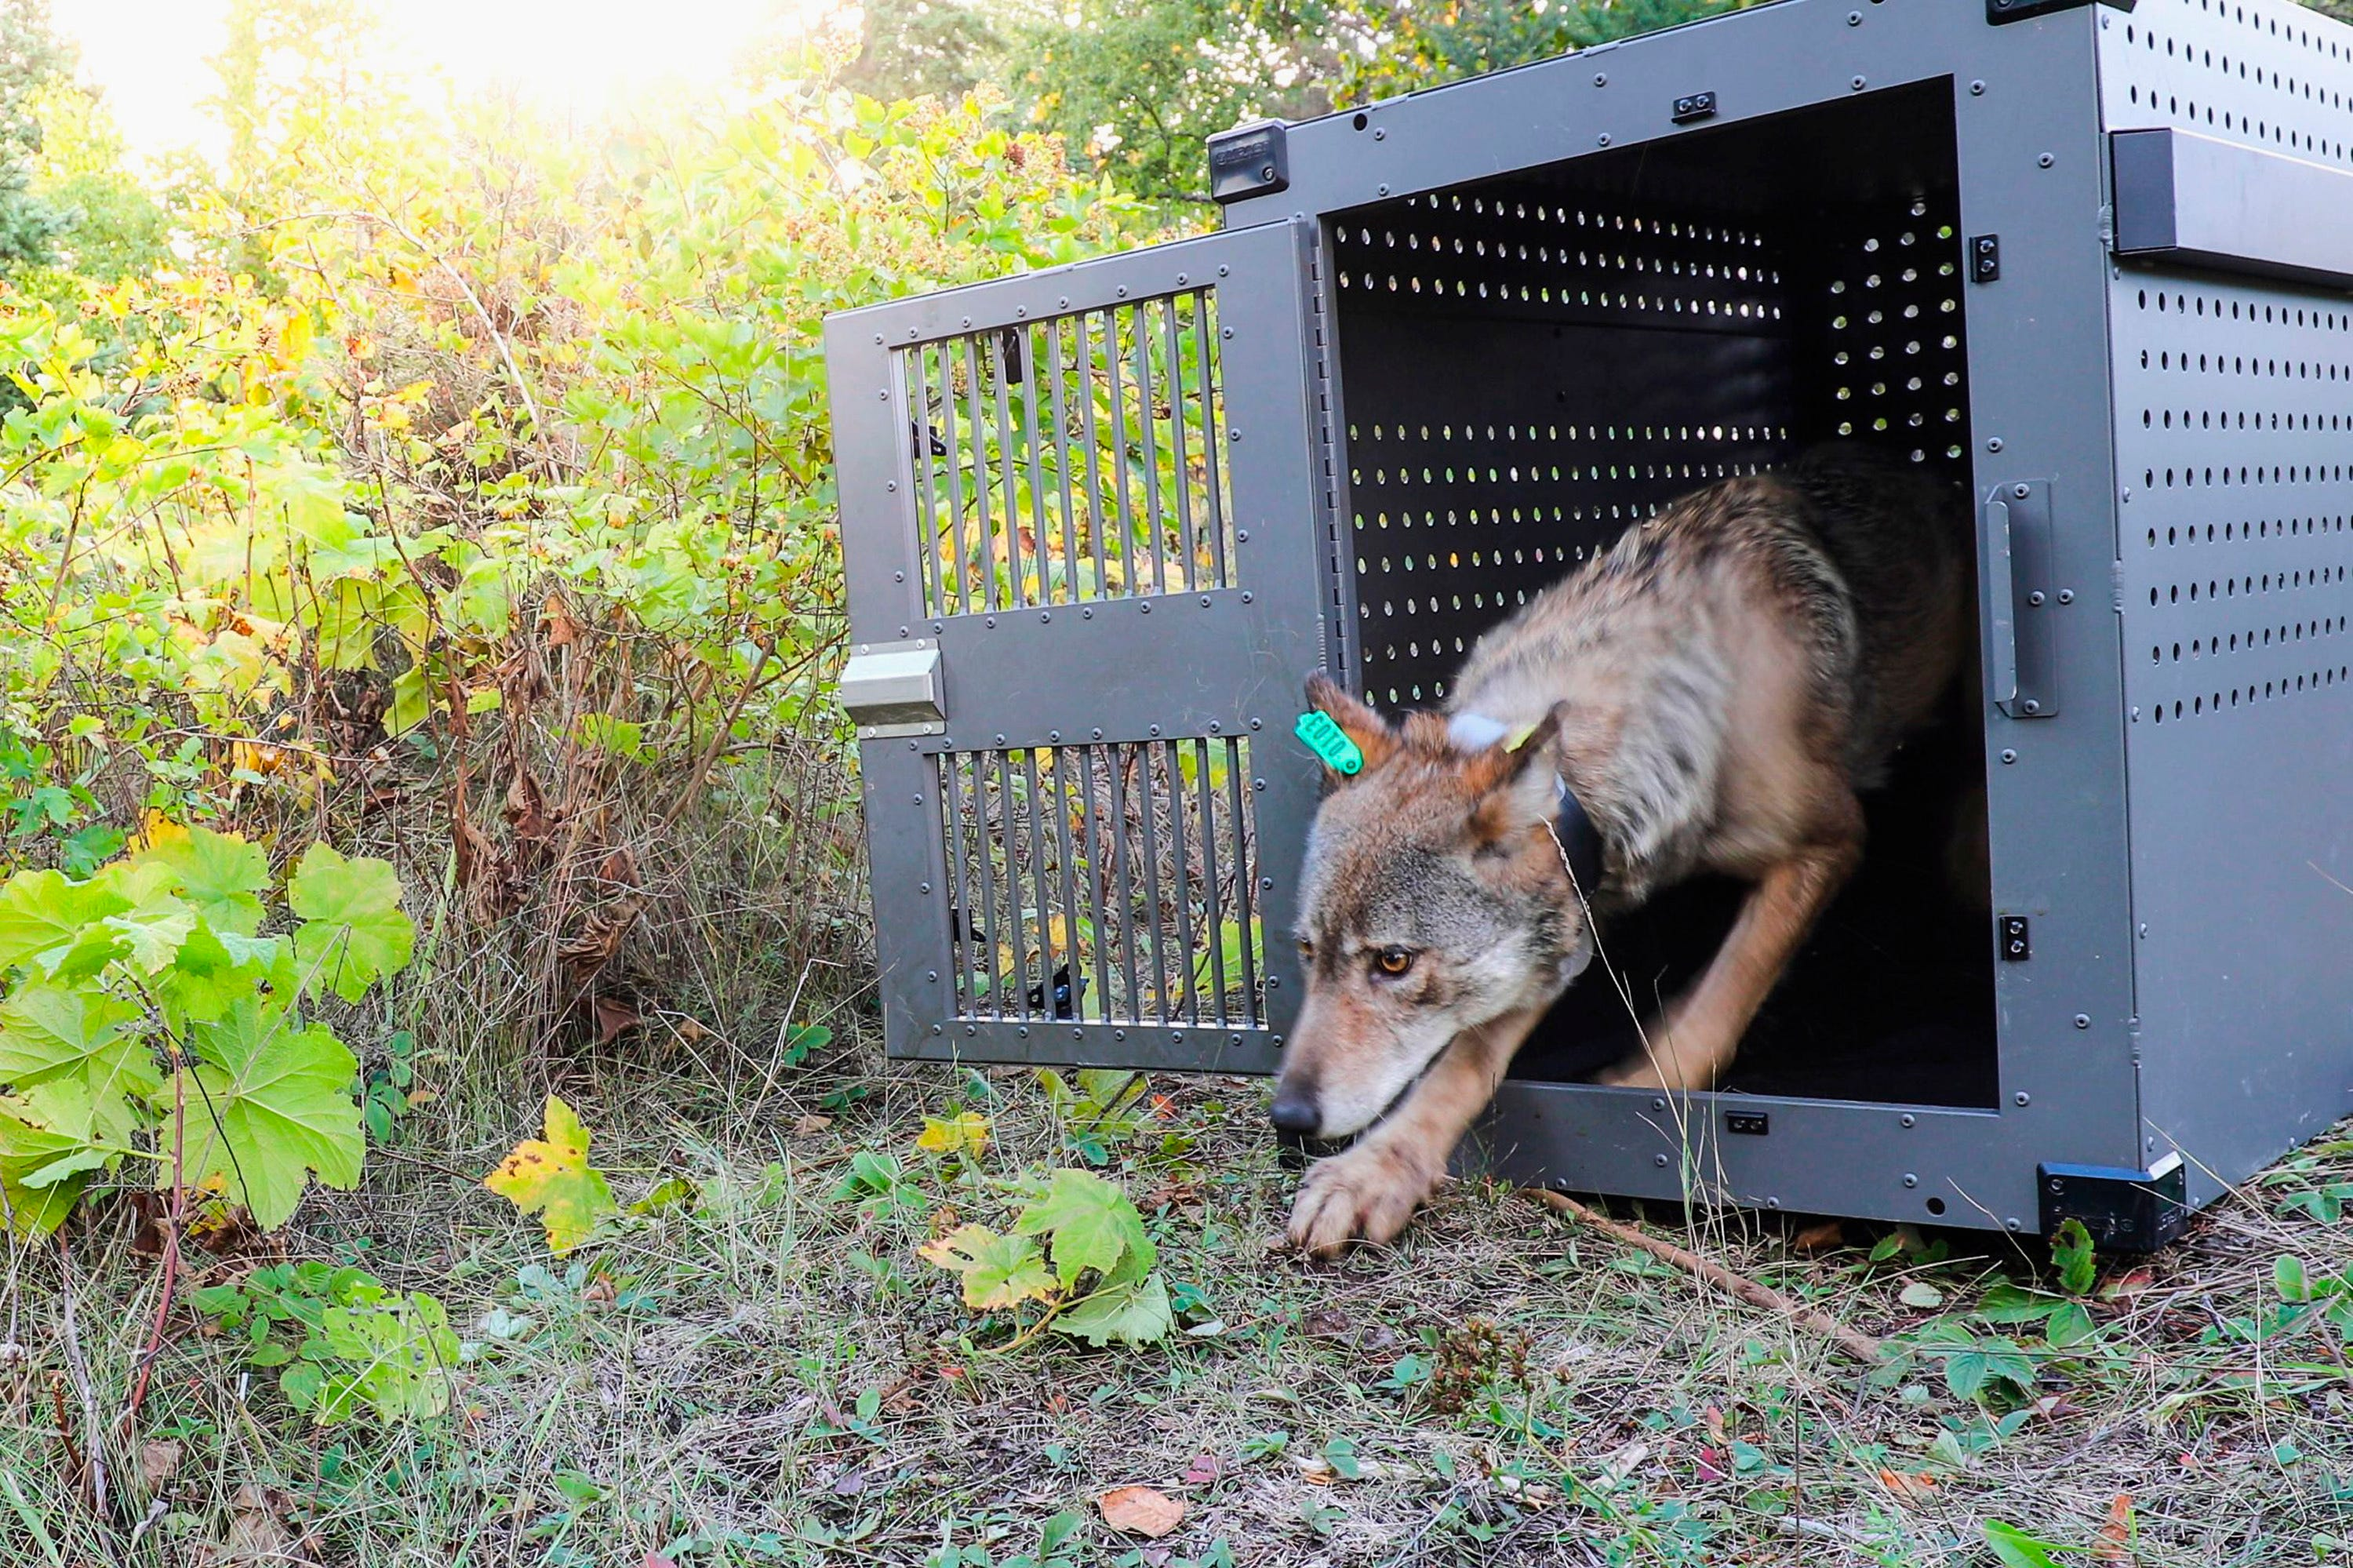 A 4-year-old female gray wolf emerges from her cage as she is released at Michigan's Isle Royale National Park in September 2018.